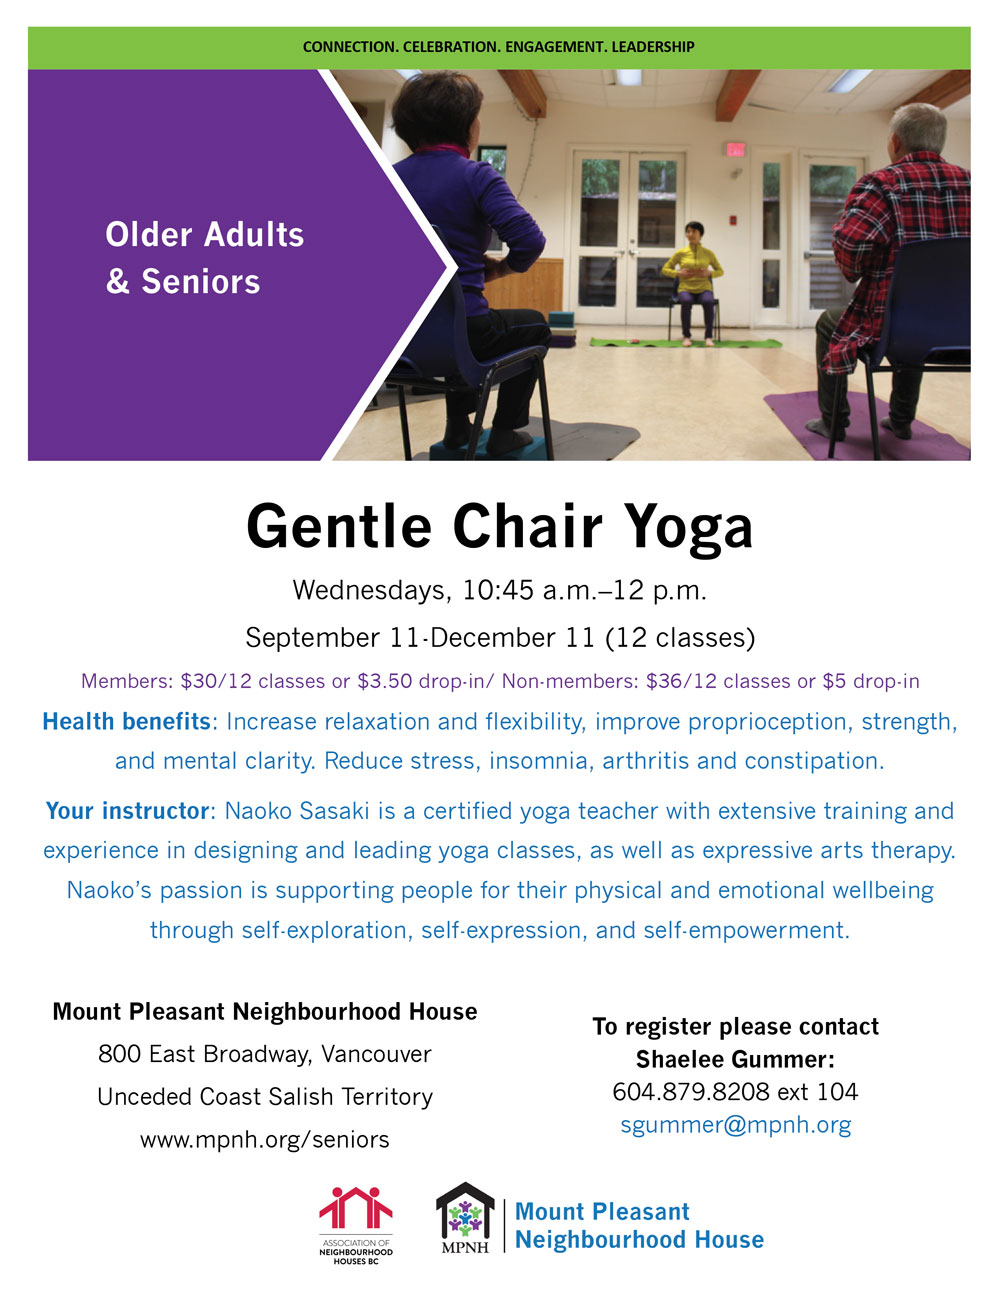 An image of the poster with program details, featuring two seniors and the instructor doing seated yoga exercises